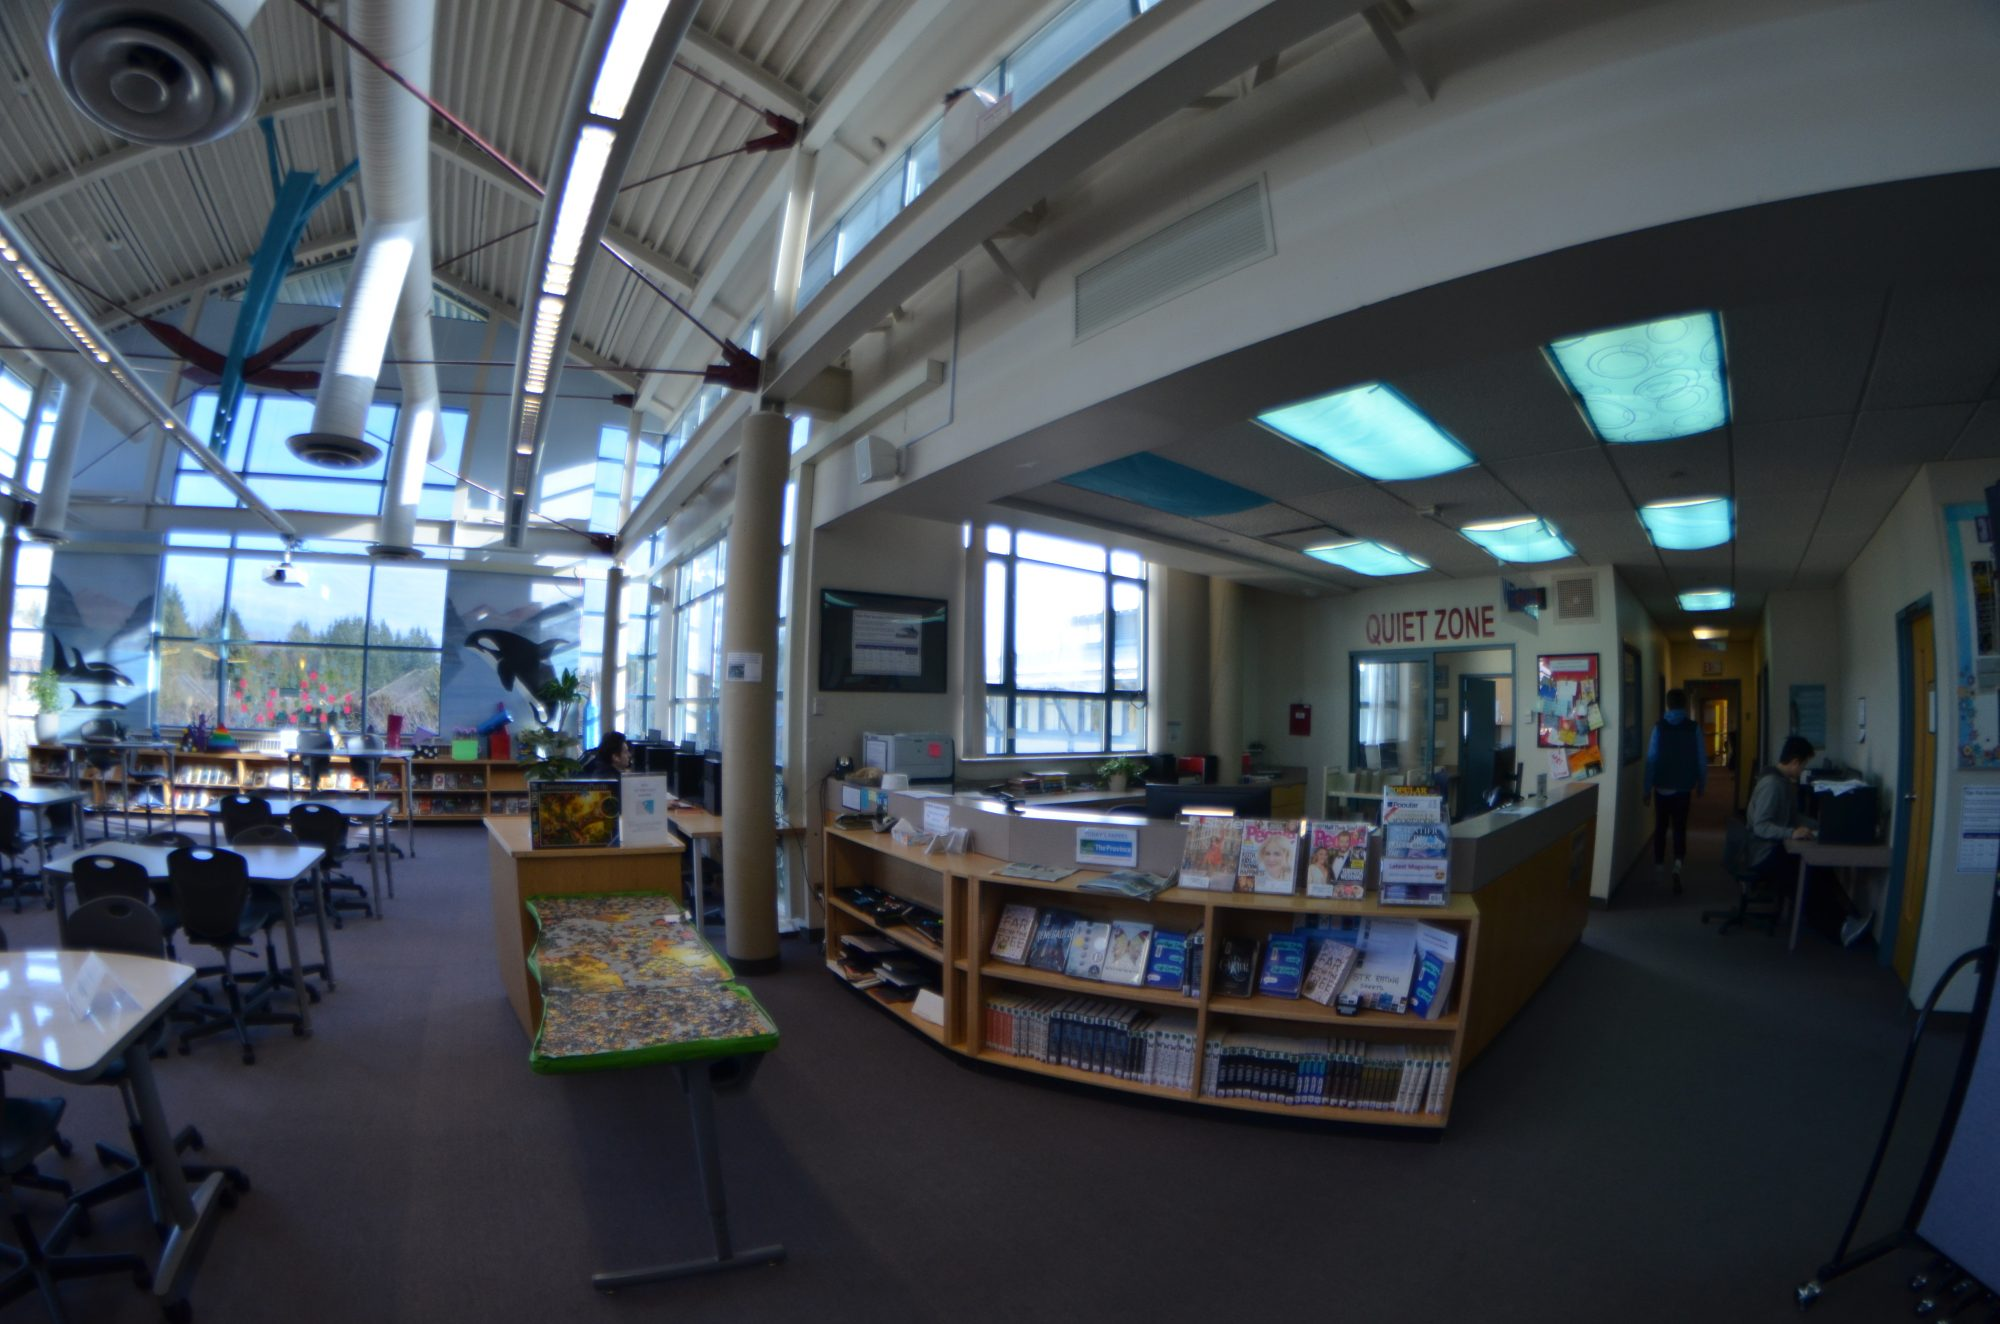 The Learning Commons @ElginParkSecondary